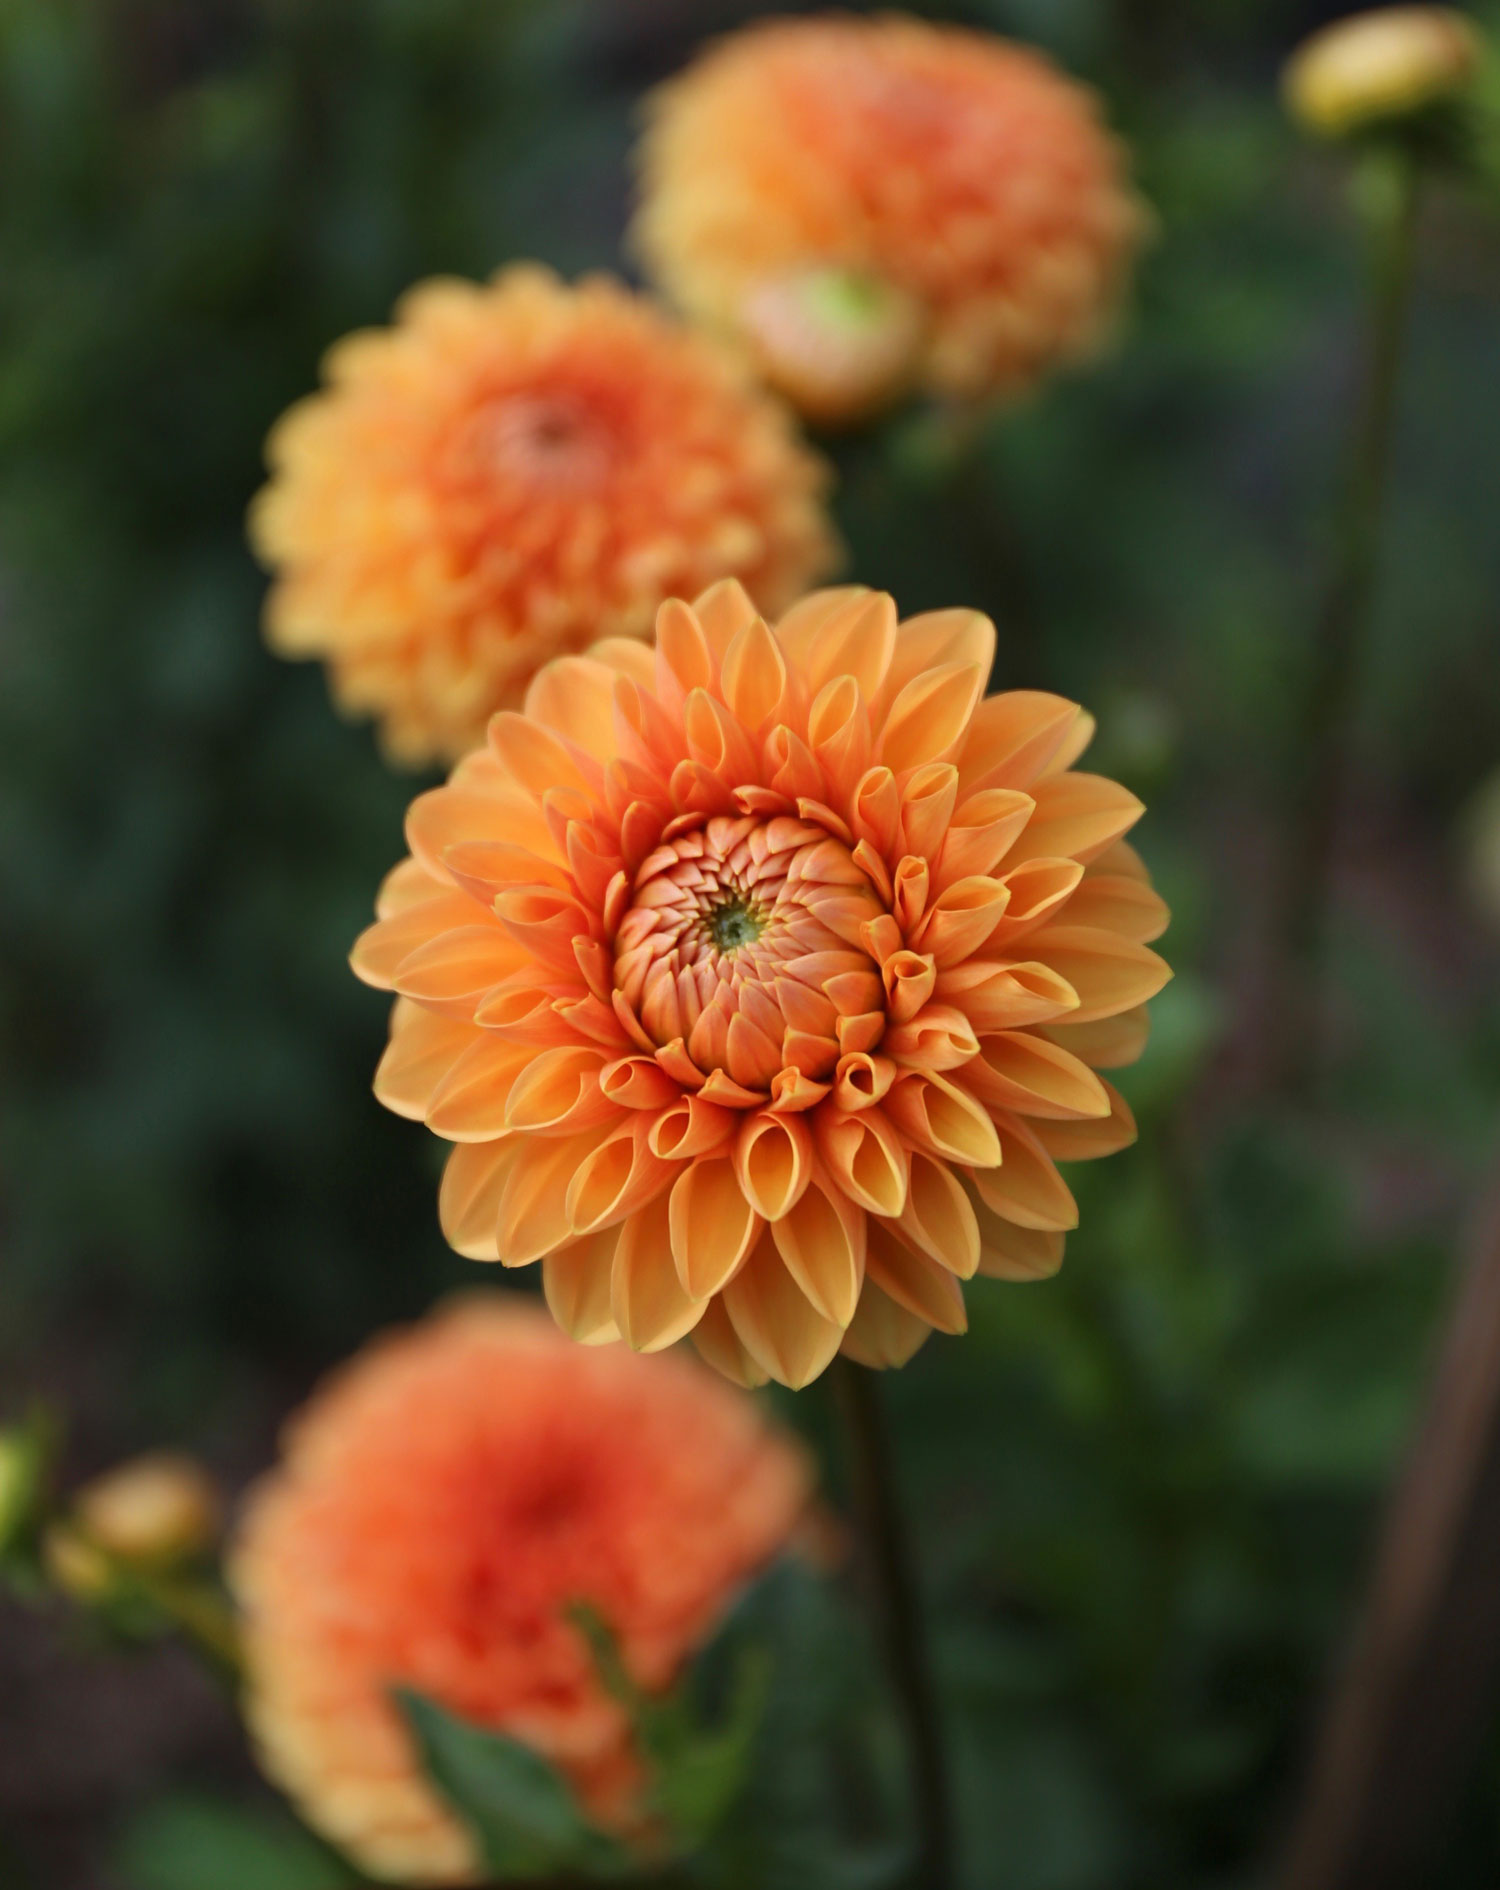 How to Design an Orange Flower Garden - Longfield Gardens